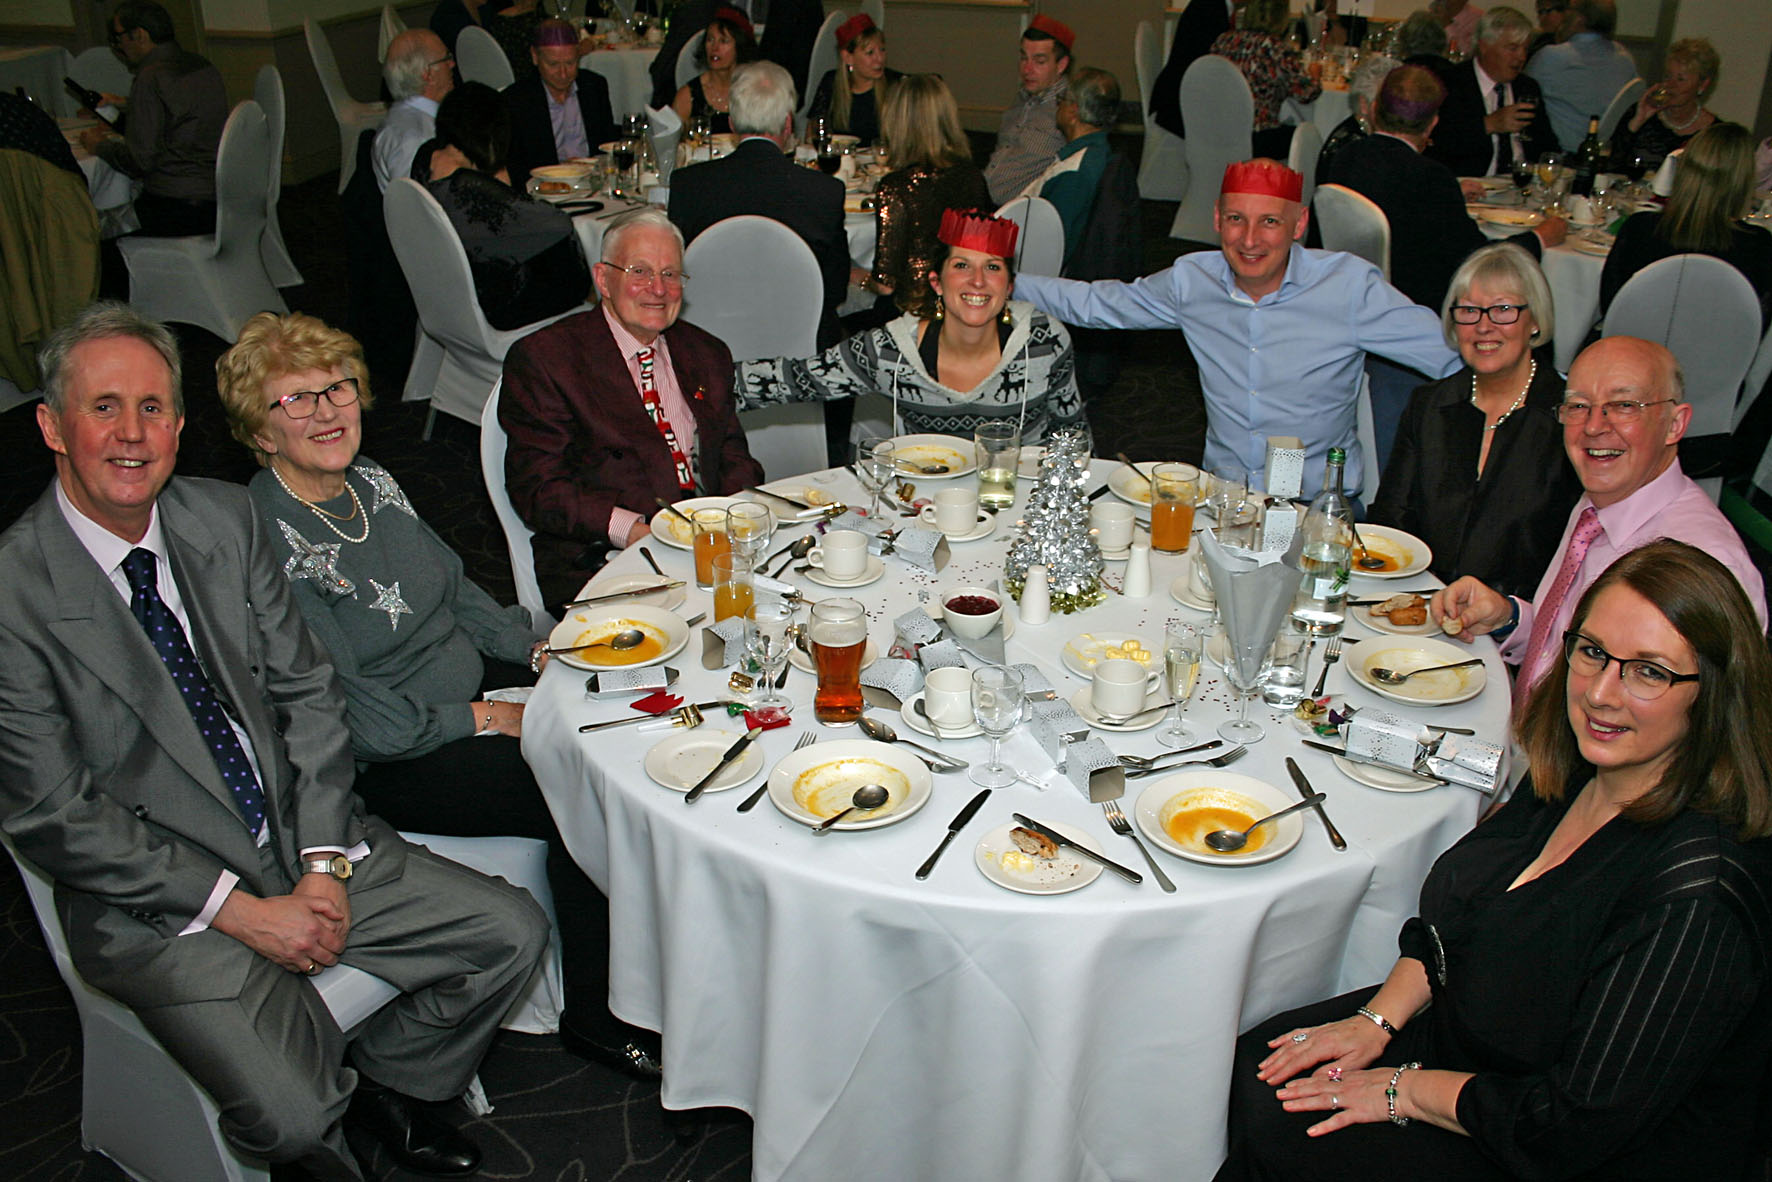 Members and guests at Xmas party